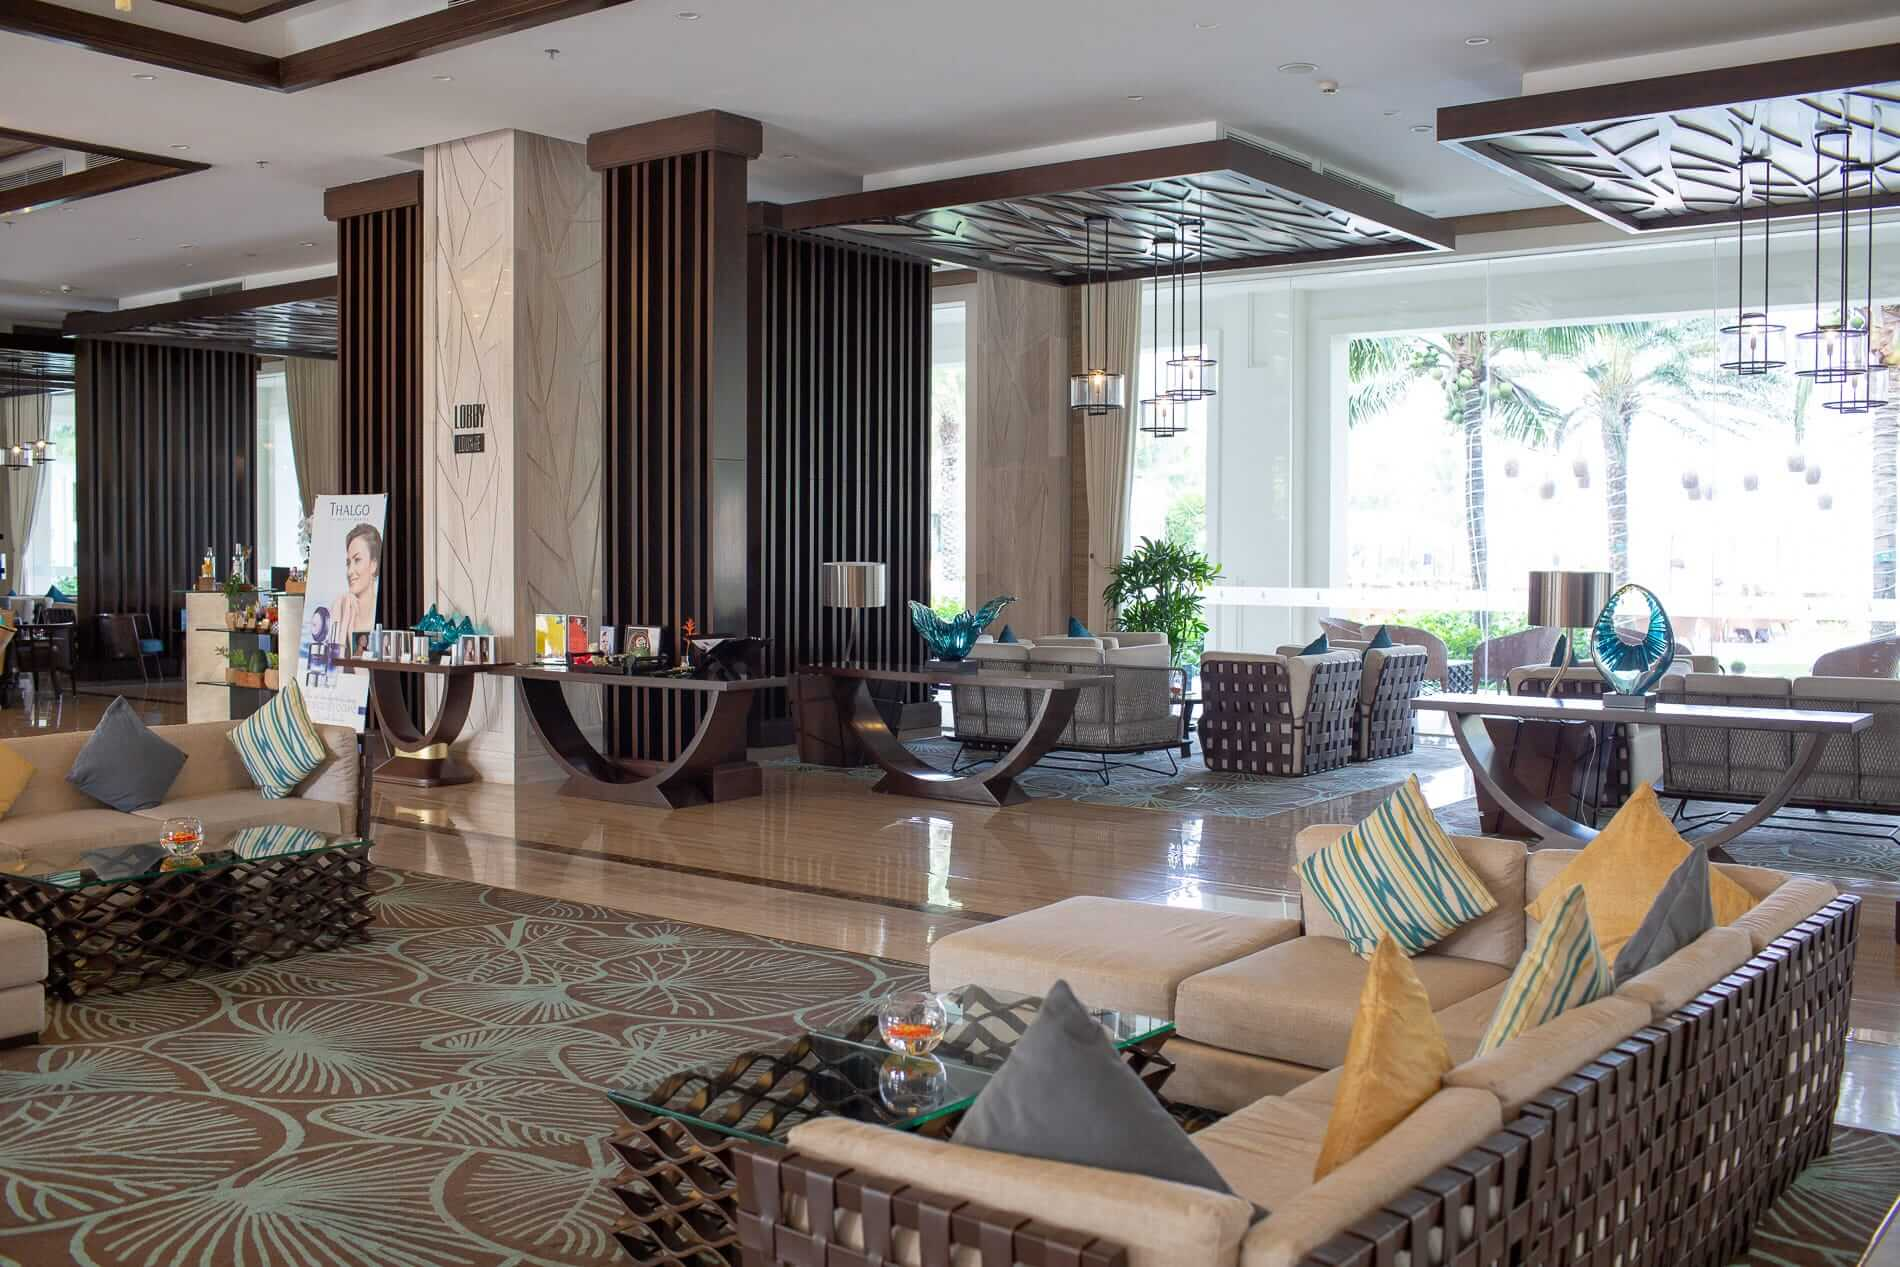 Reception and lounge at The Vinpearl Resort - Hoi An Beach Resorts